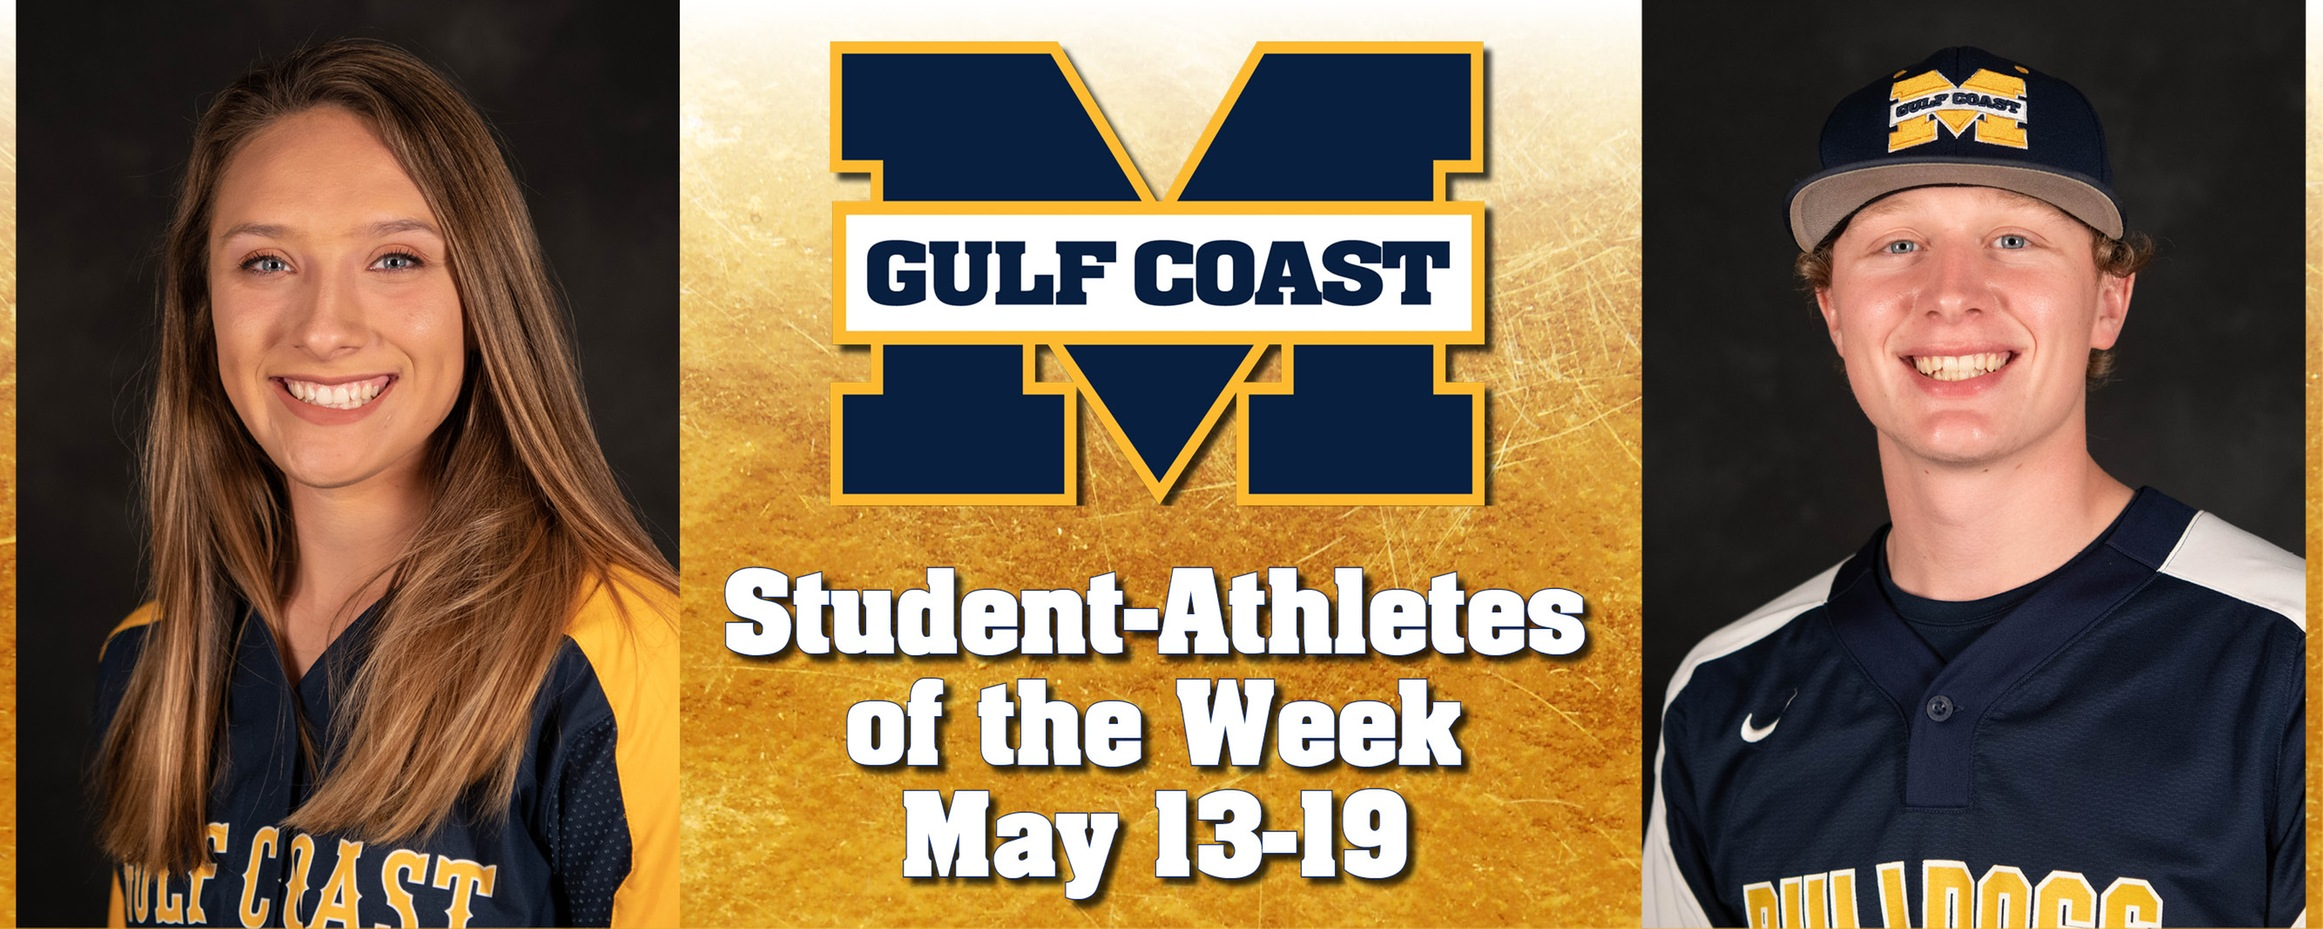 Cade, Hall named MGCCC Student-Athletes of the Week